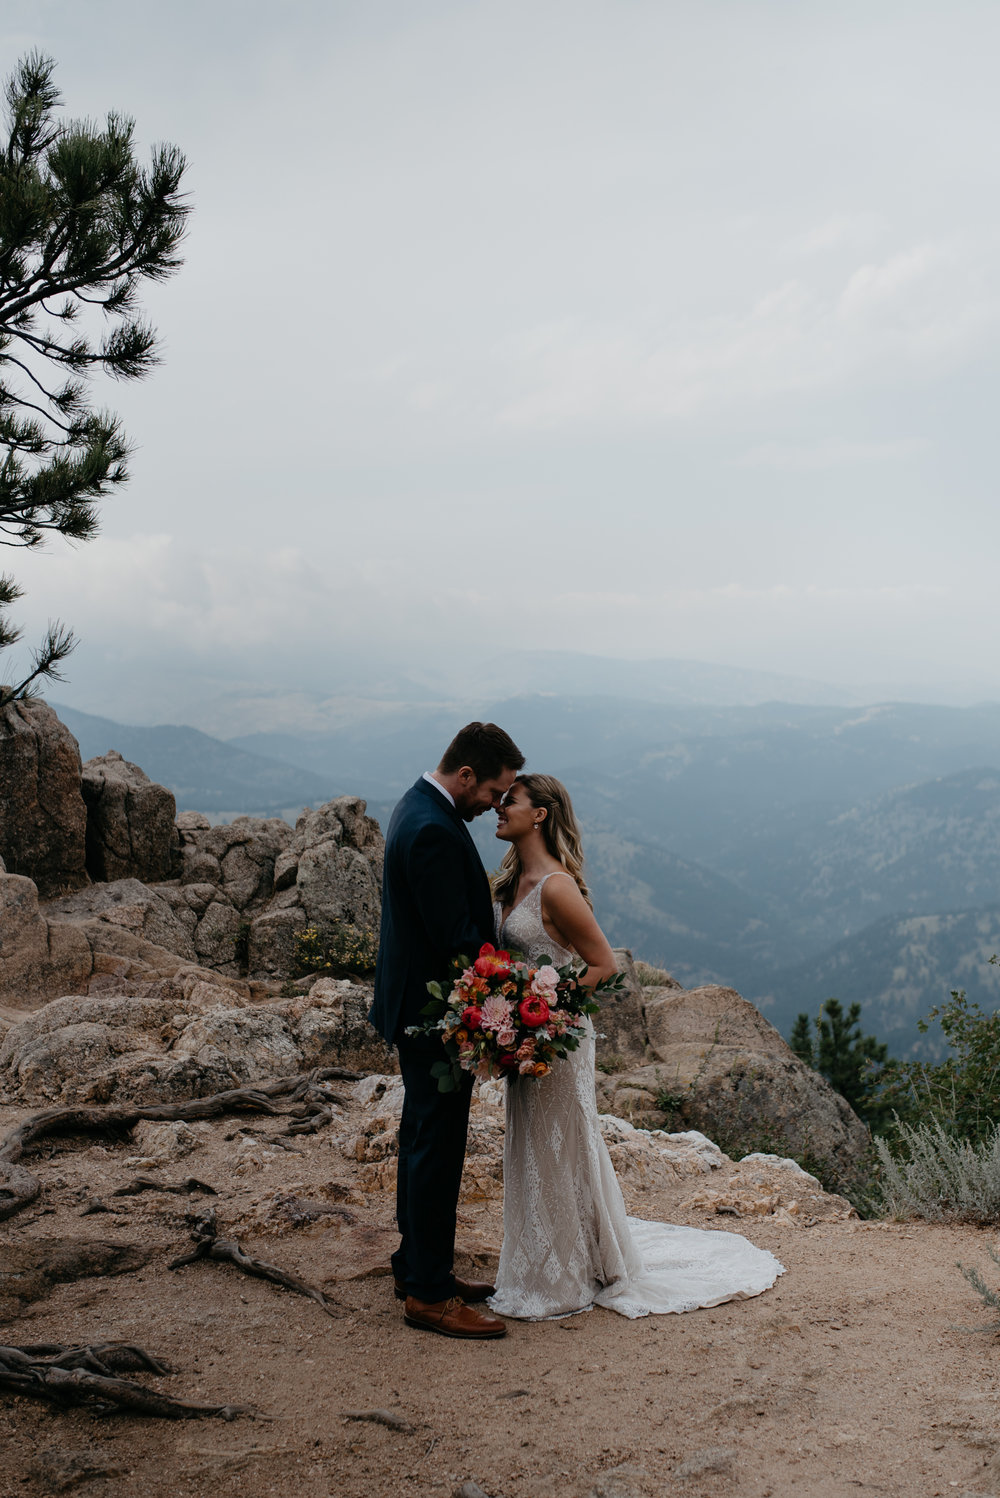 Boulder, Colorado mountain elopement at Lost Gulch. Colorado adventure elopement and wedding photographer.